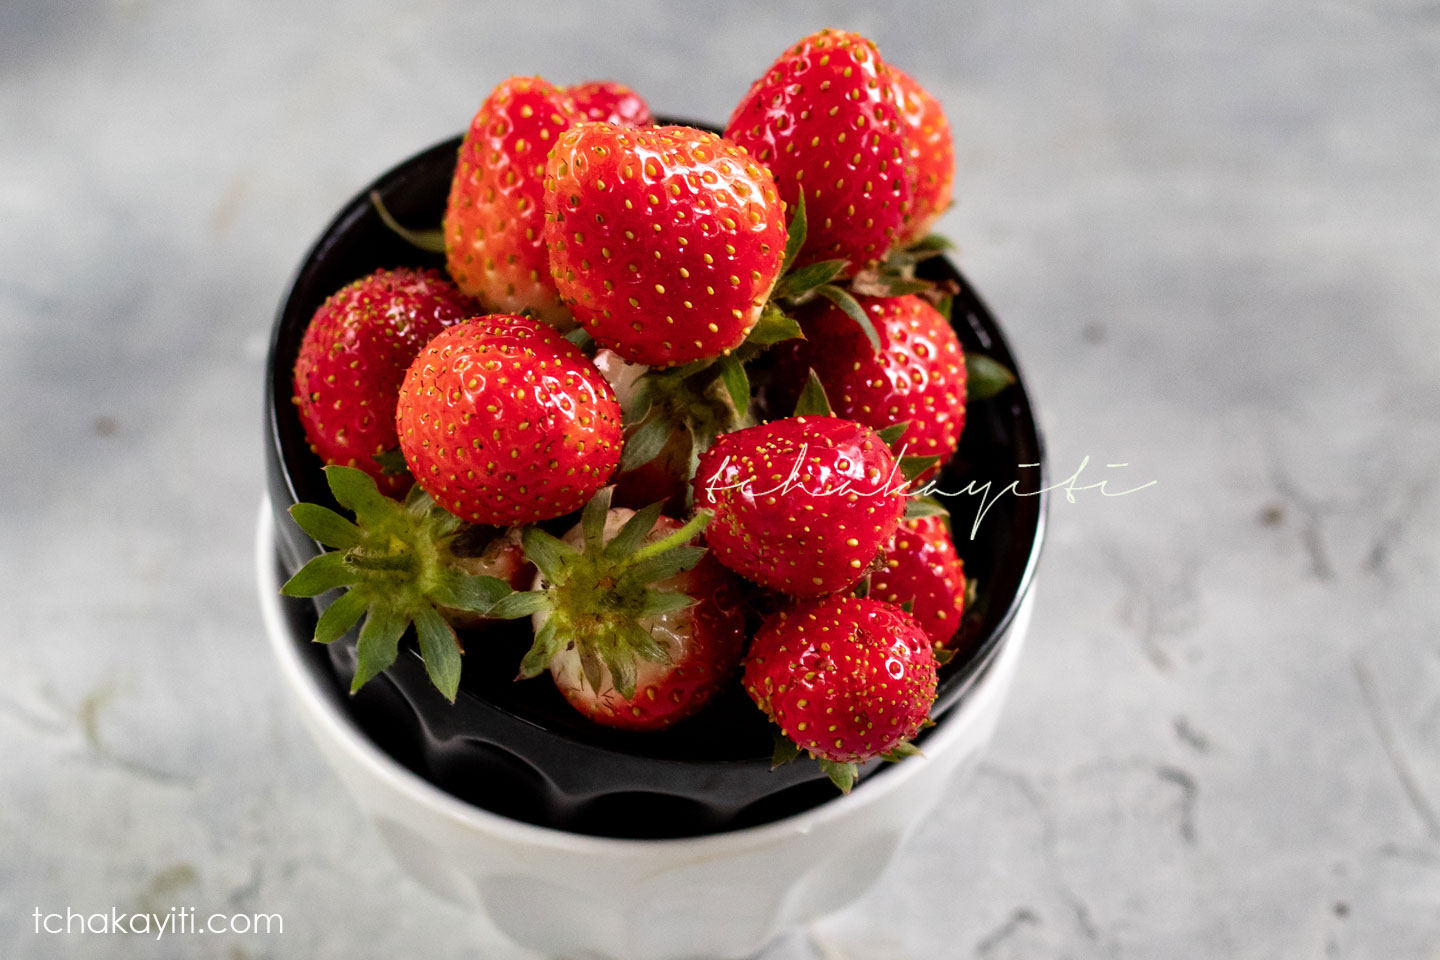 These strawberries are straight from our garden in Haiti. They're tiny but packed with flavors. | tchakayiti.com